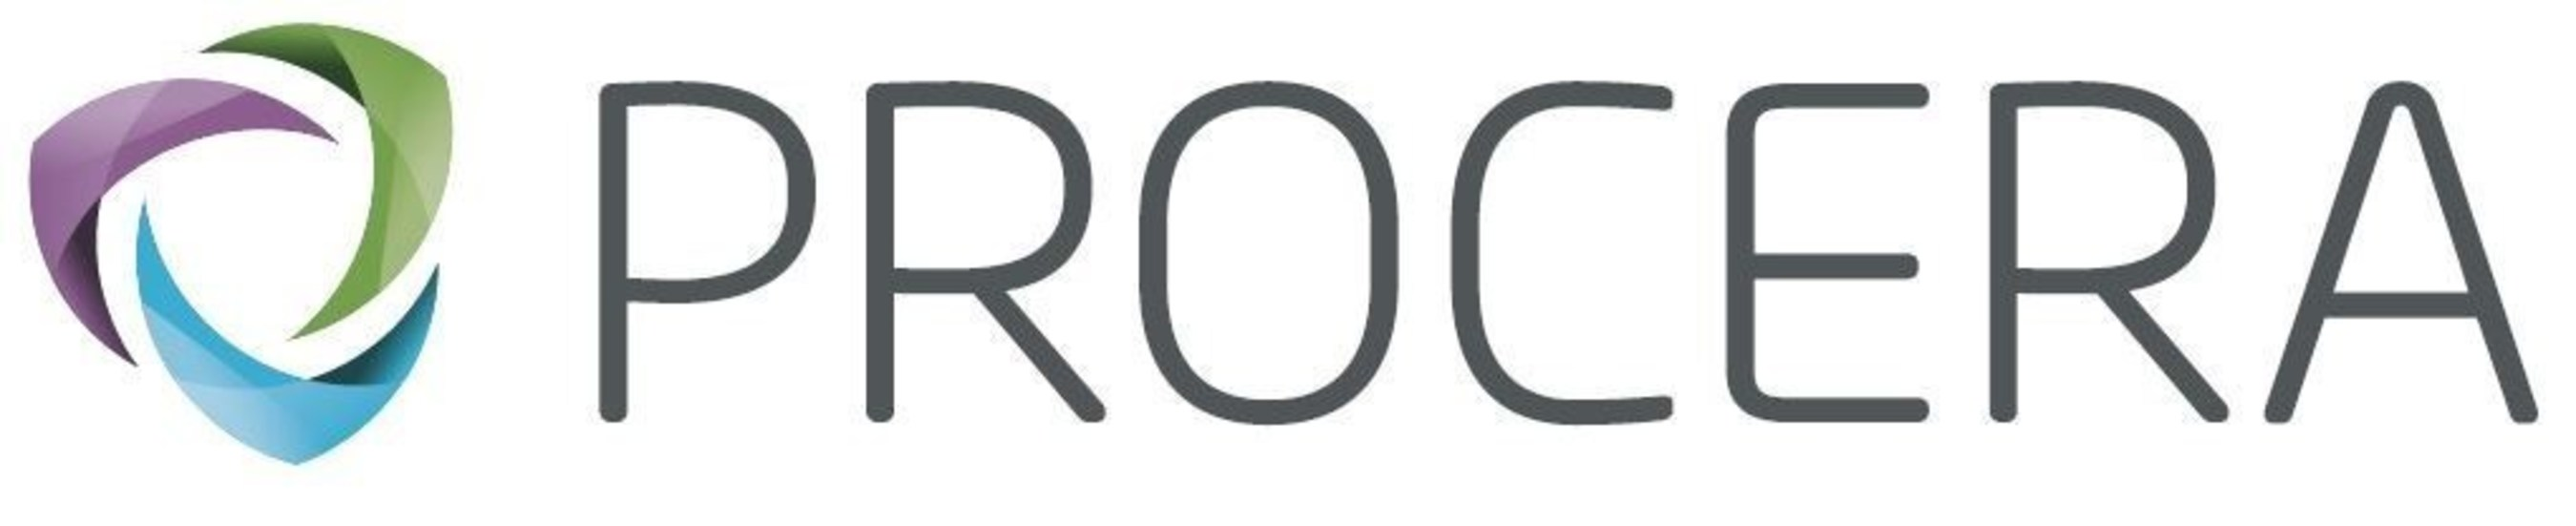 About Procera Networks, Inc.: Procera Networks, Inc., the global Subscriber Experience company, is ...